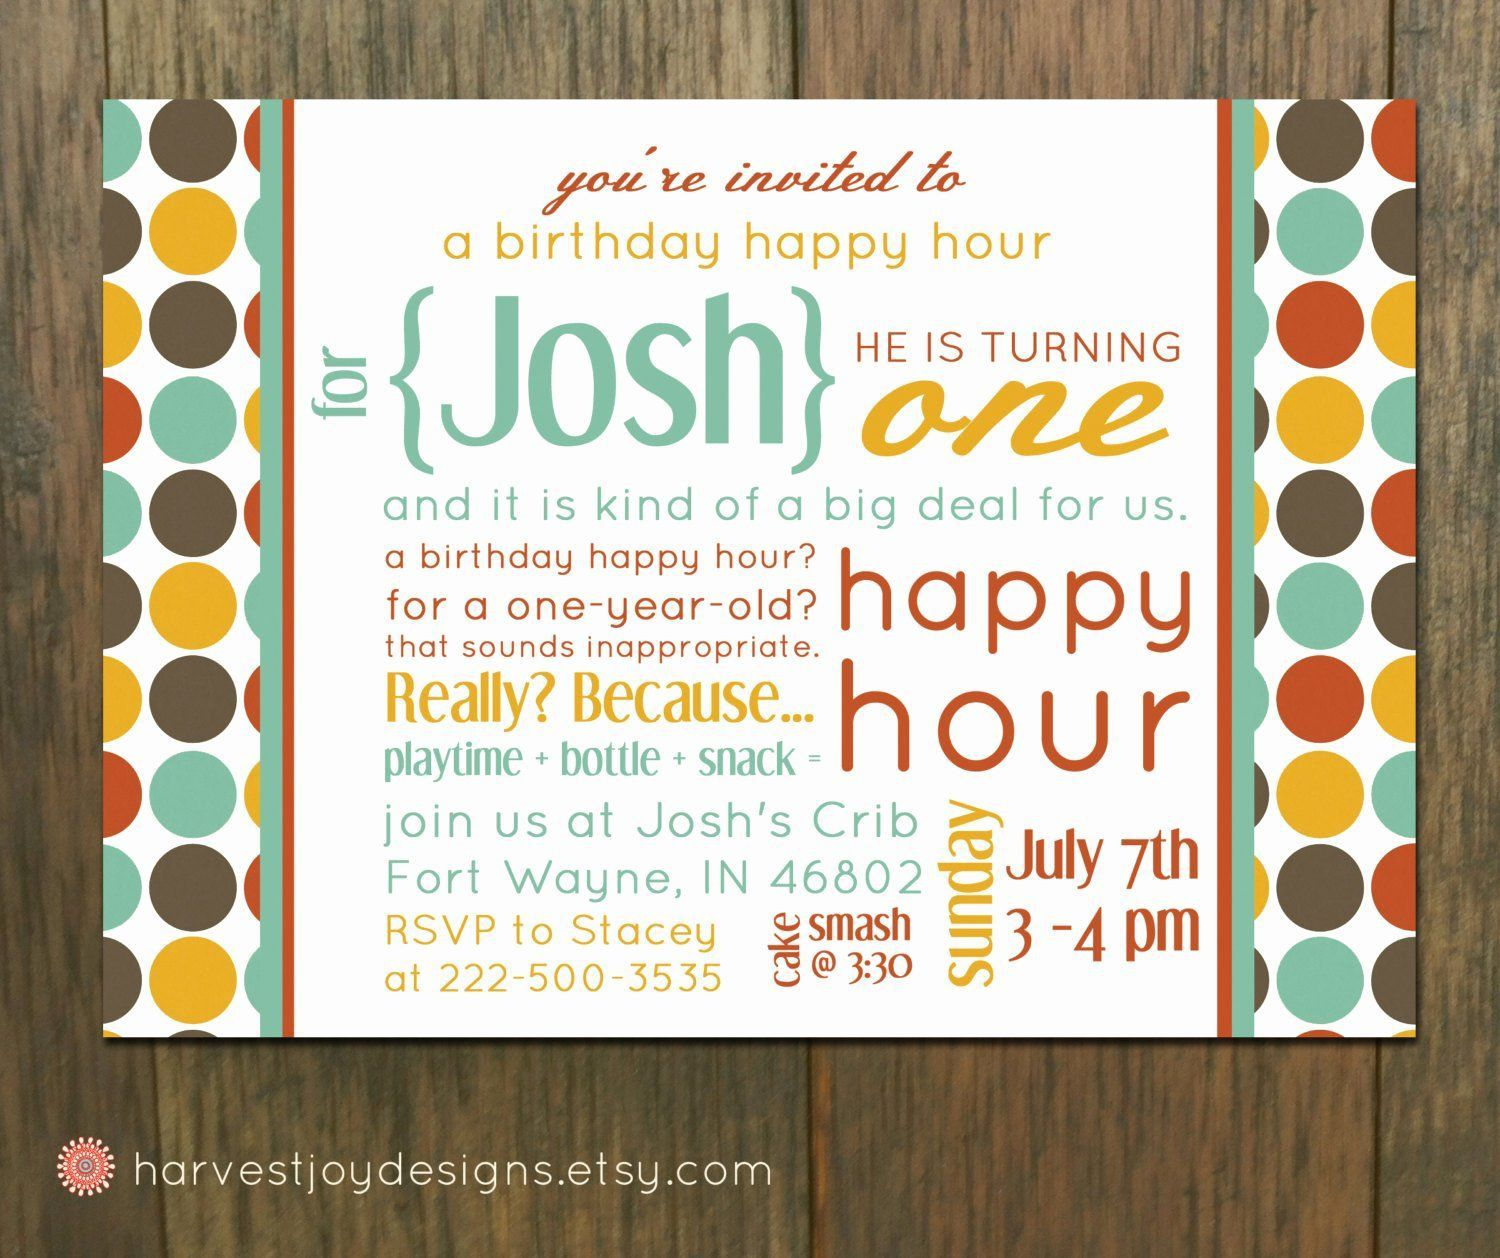 002 Magnificent Happy Hour Invitation Template High Resolution  Templates Free Word FarewellFull